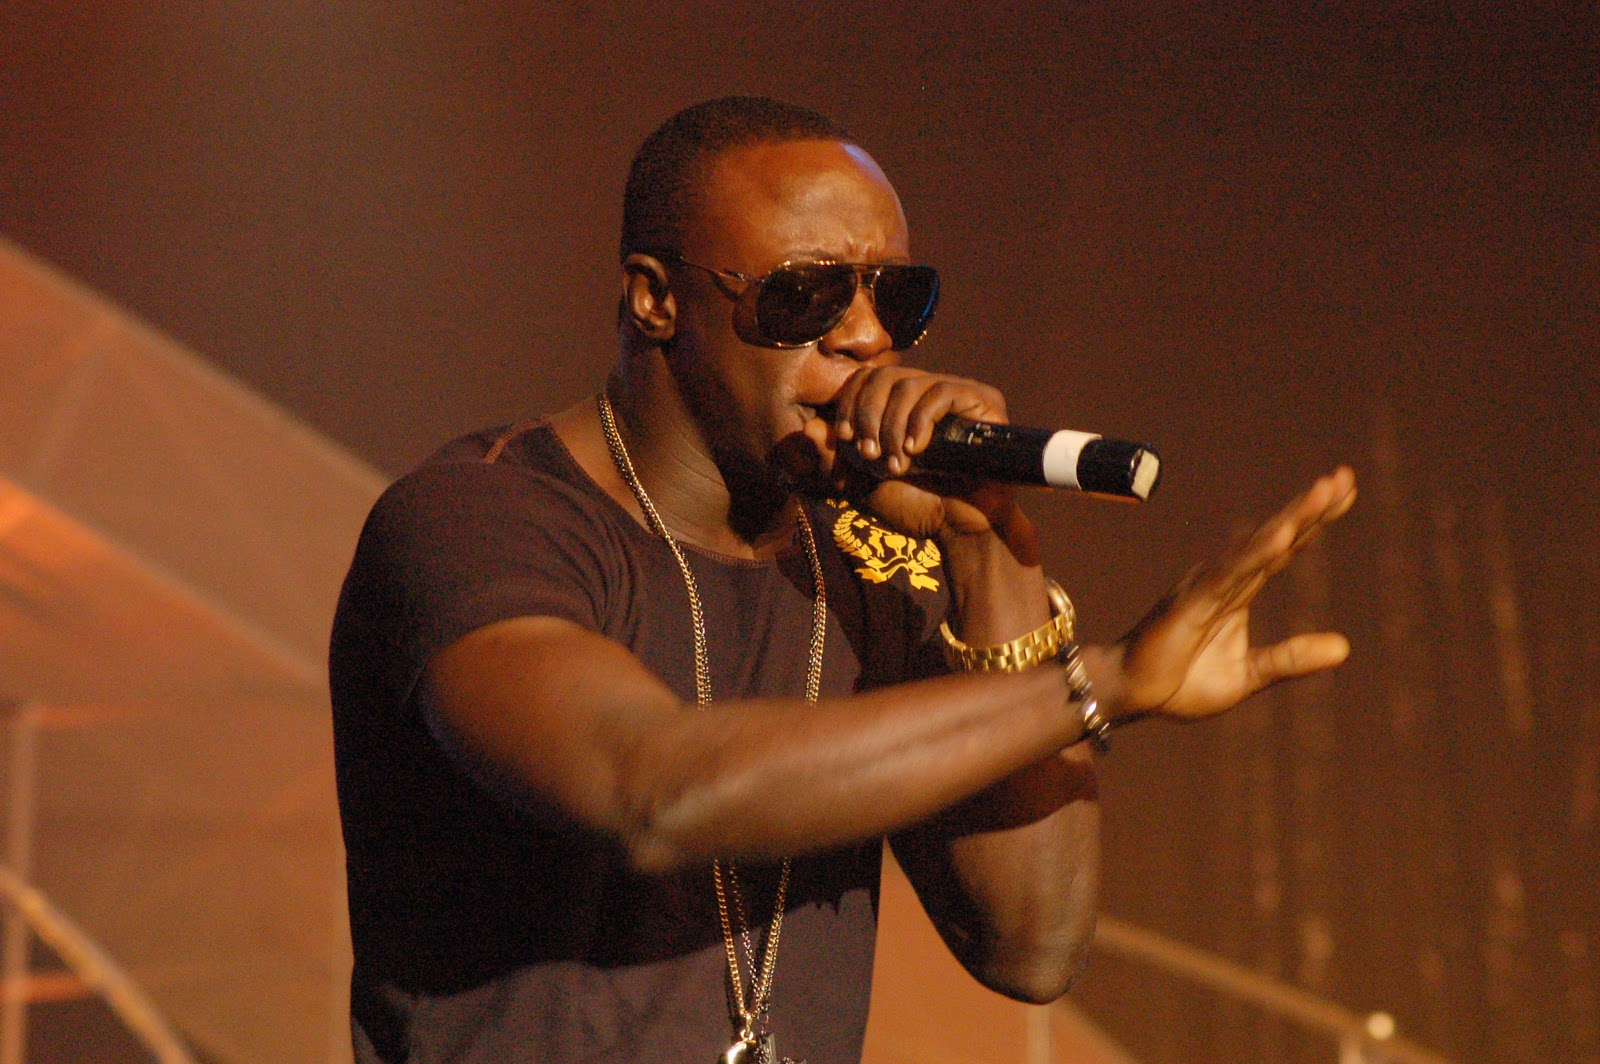 Headies 2012: Chuddy K taken off 'Next Rated' category